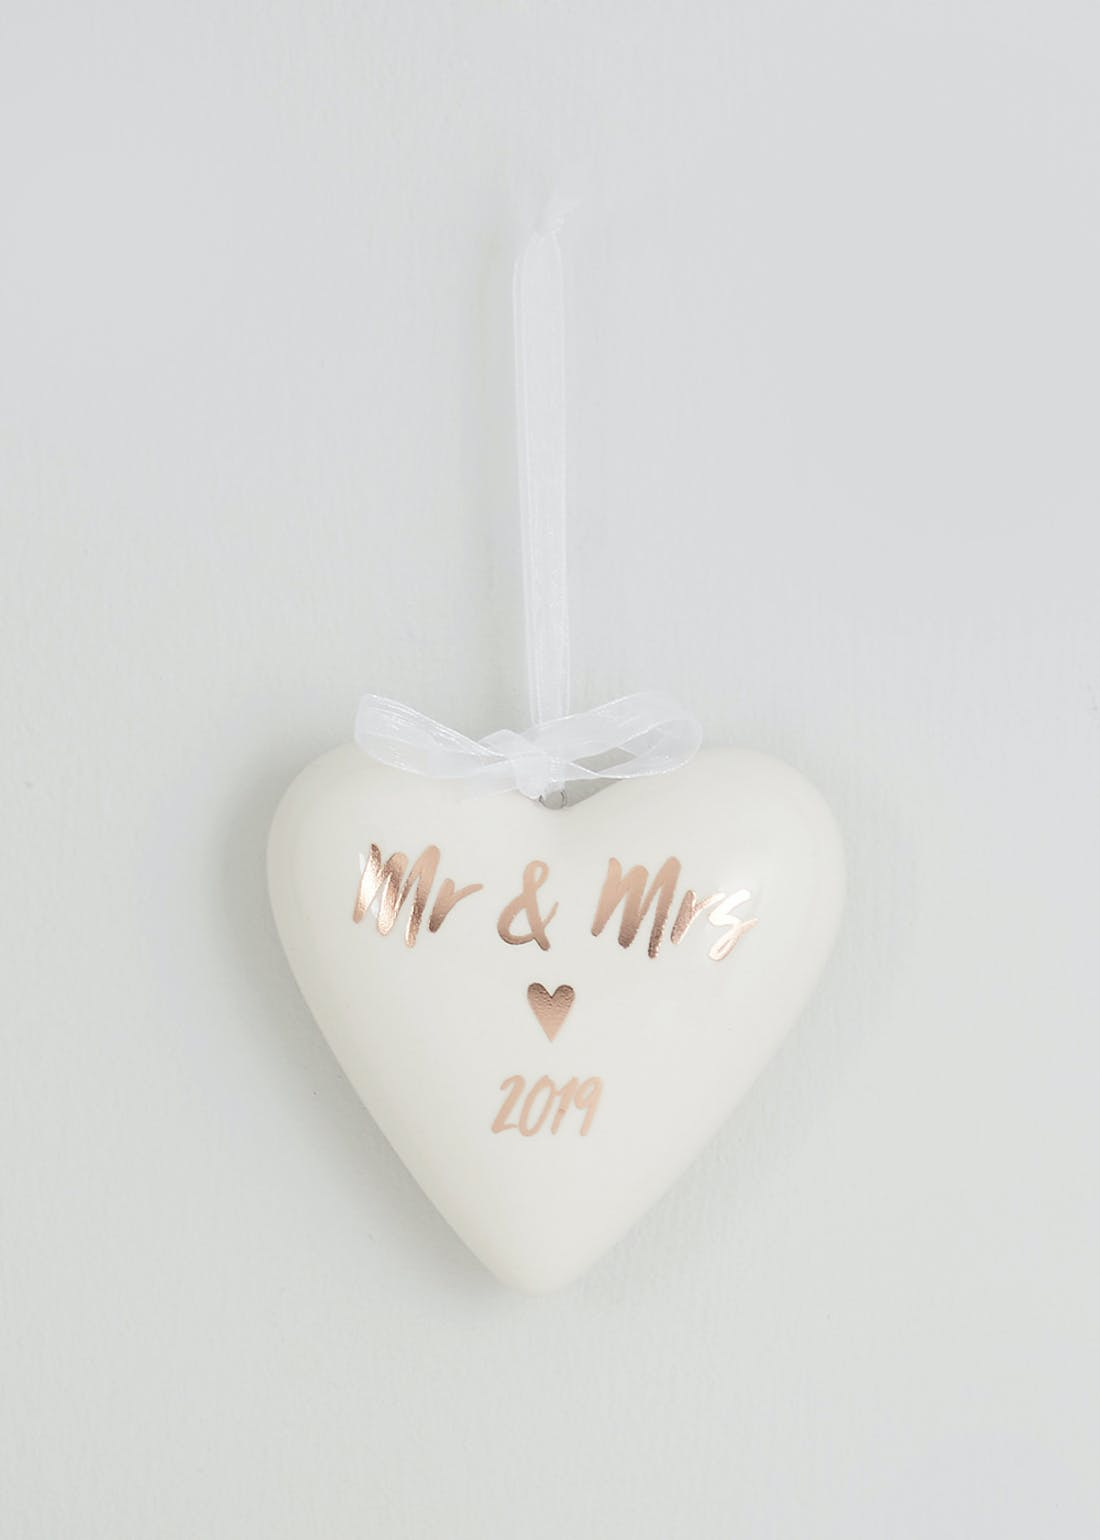 Mr & Mrs Ceramic Hanging Heart (10cm x 9cm x 3cm)